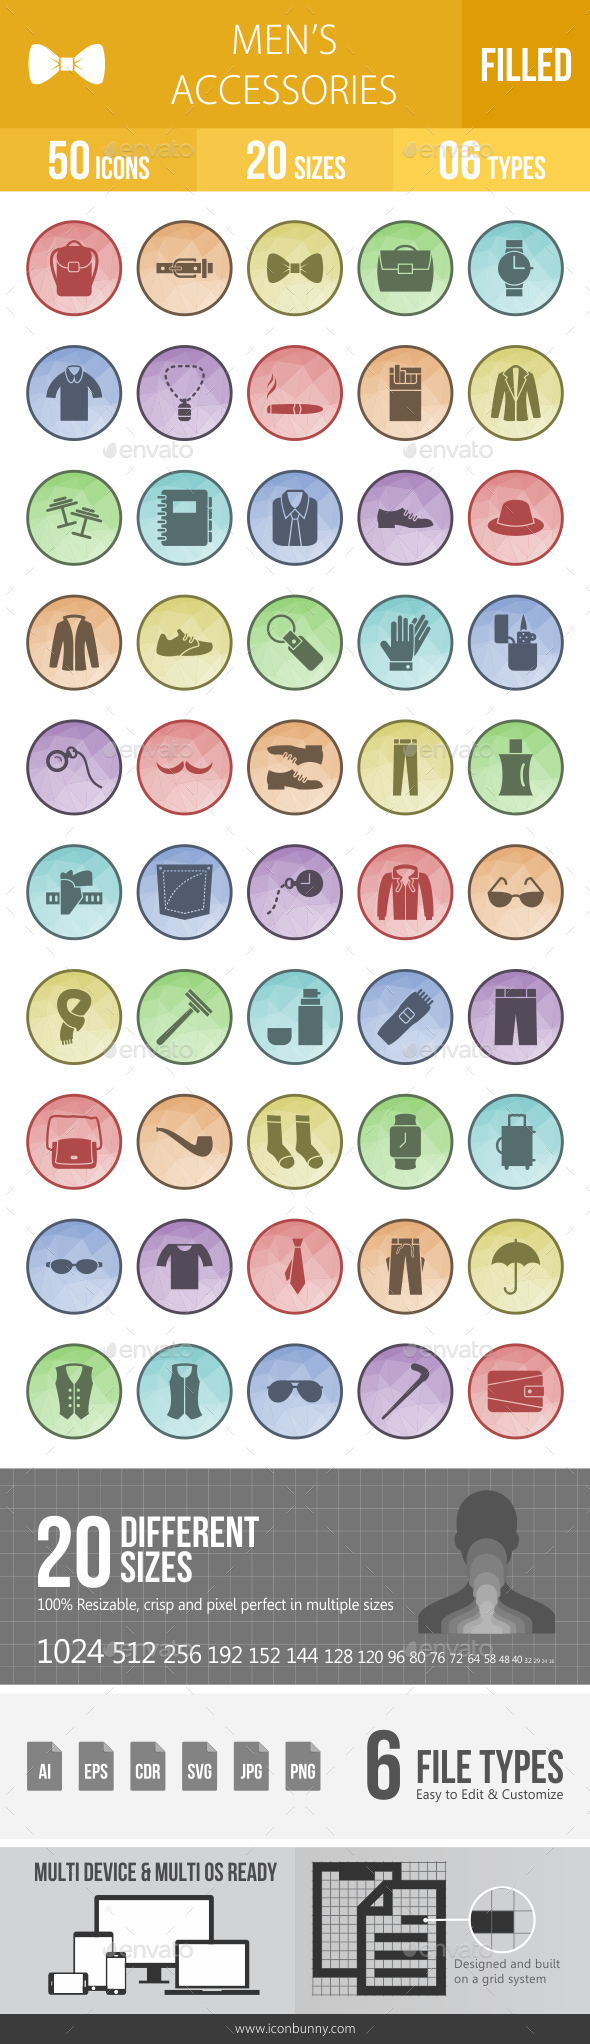 Men's Accessories Filled Low Poly B/G Icons - Icons